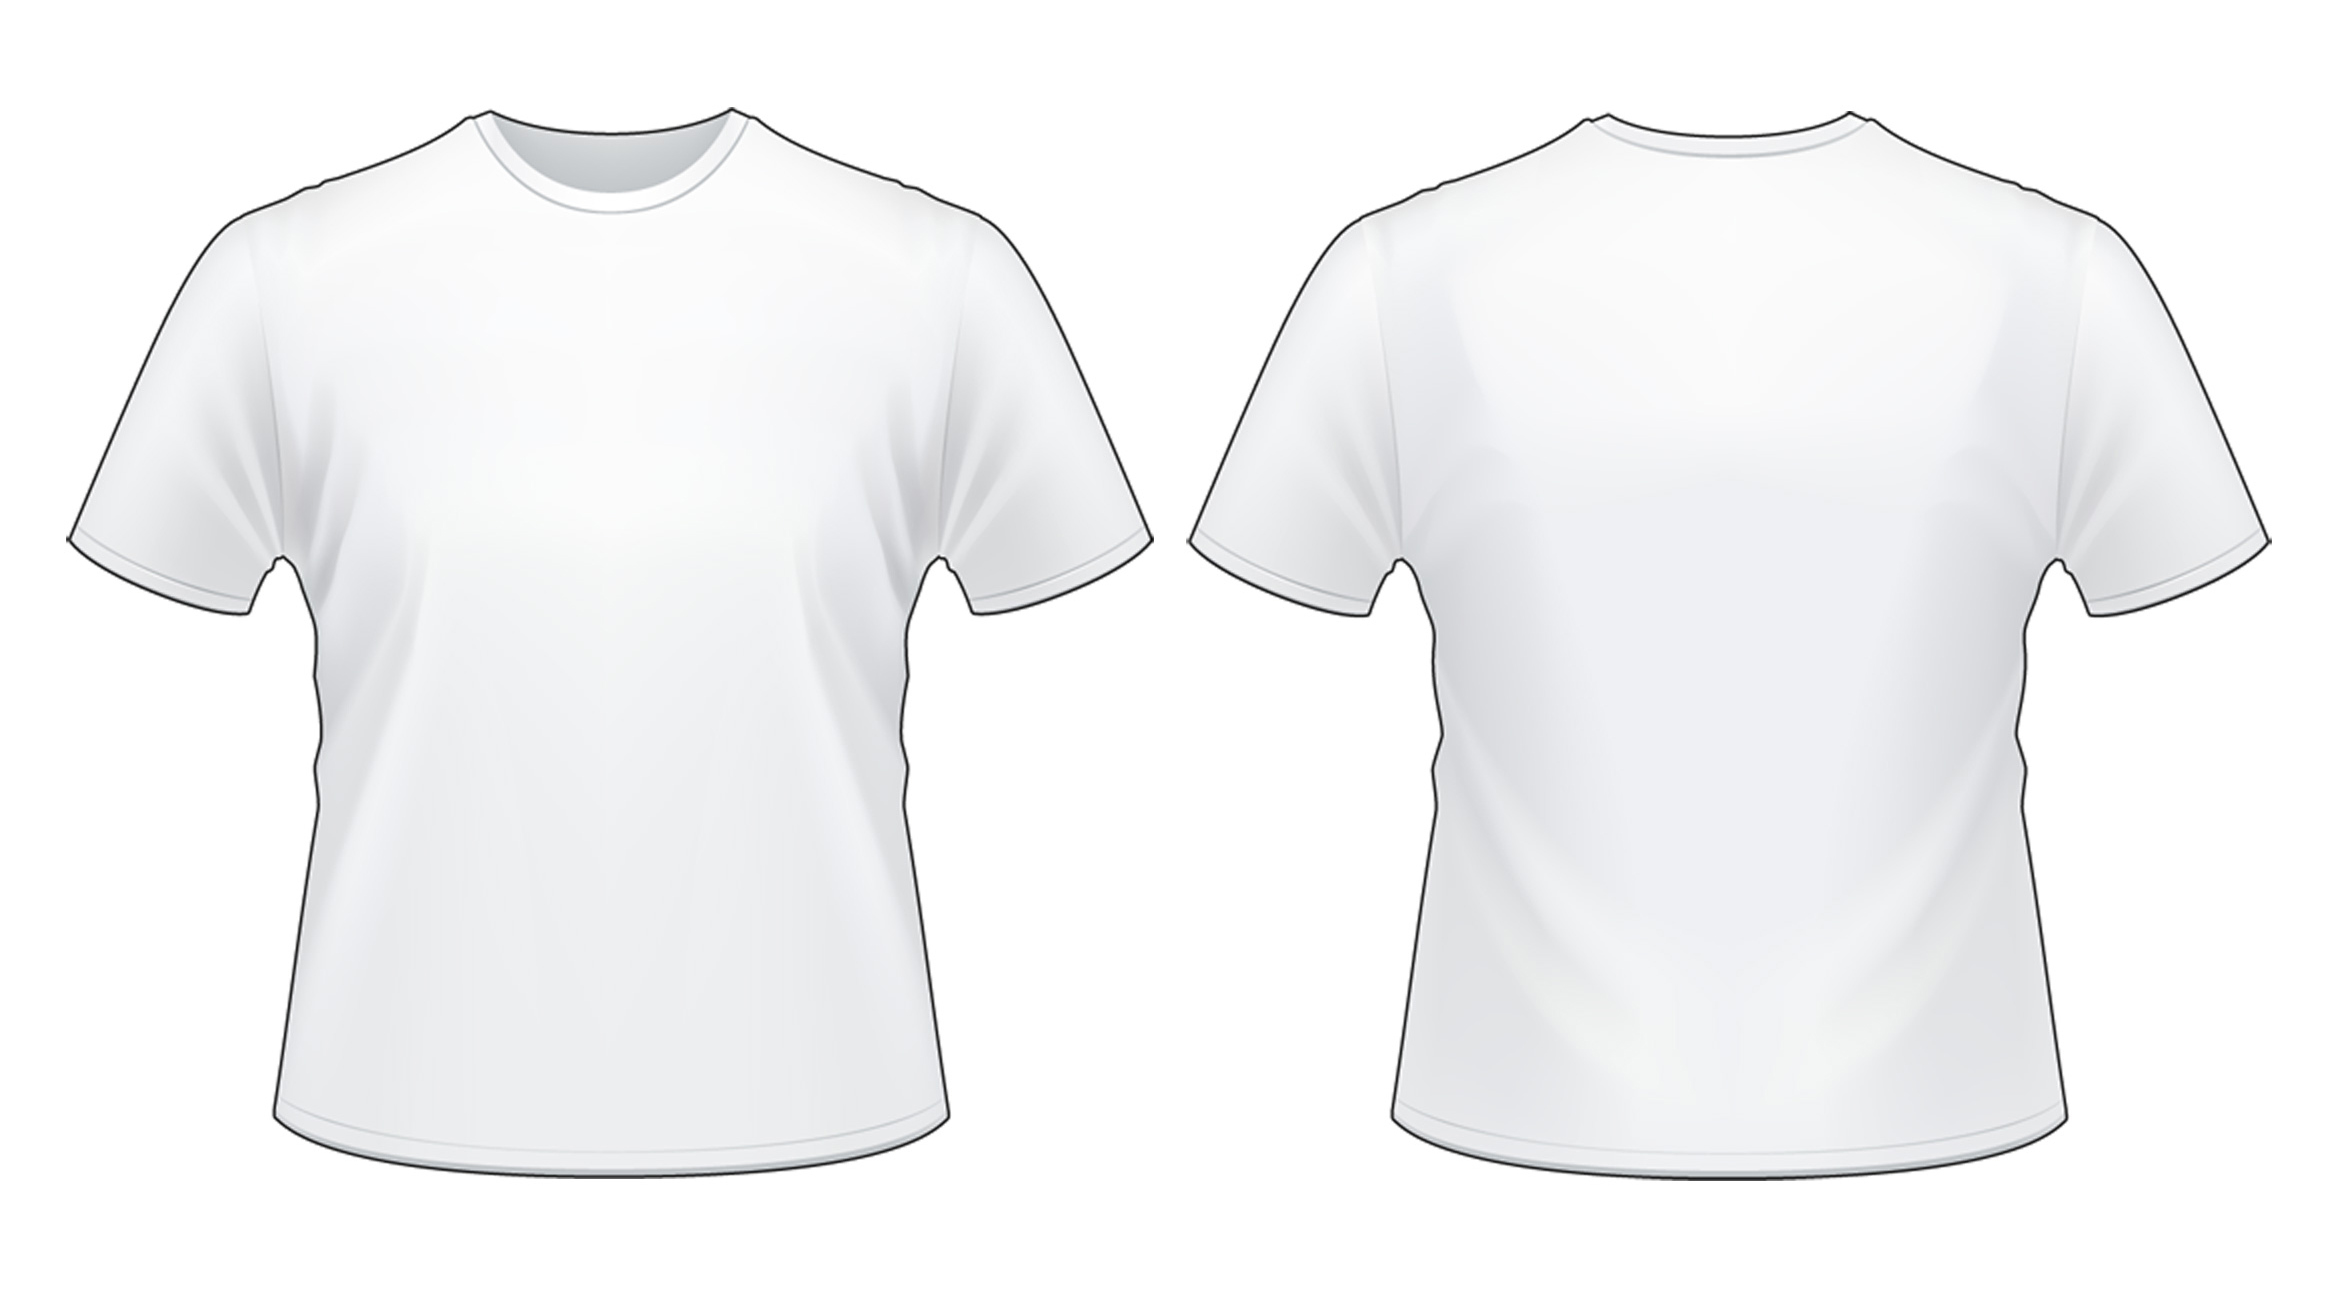 White t shirt for design - Download